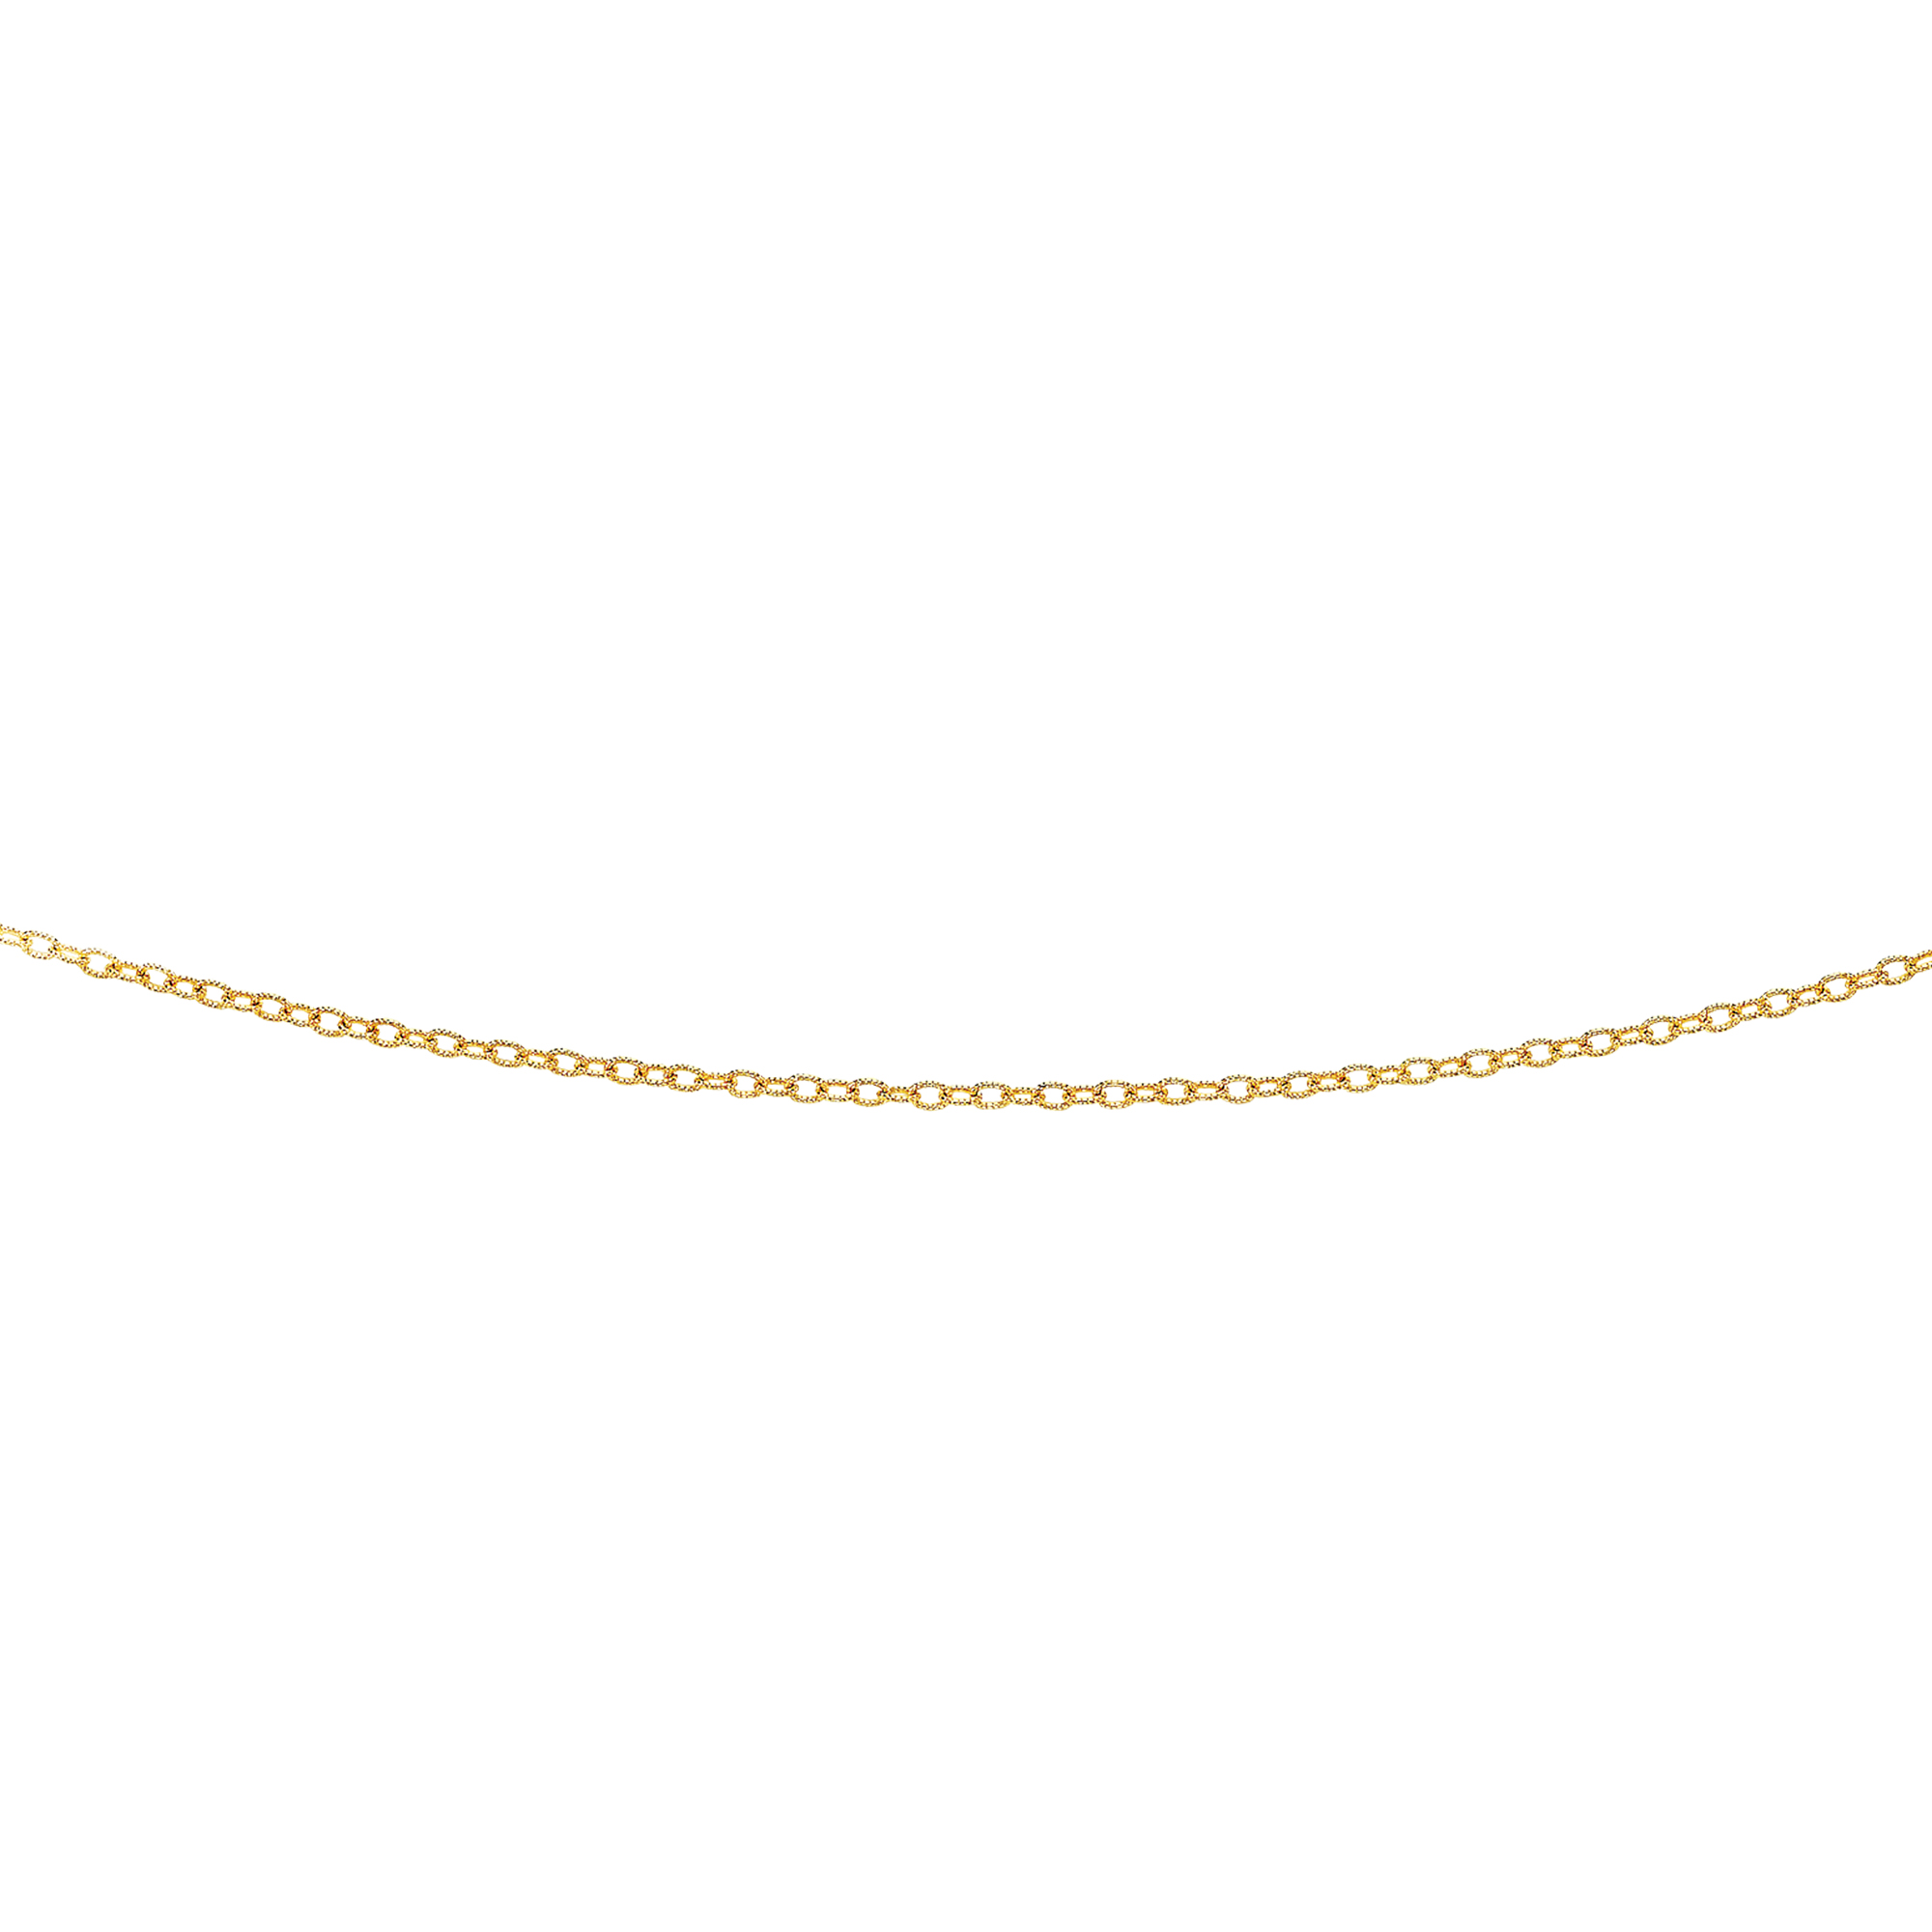 14kt 24 inches Yellow Gold 2.5mm Diamond Cut Oval Texturedd Link Chain with Lobster Clasp